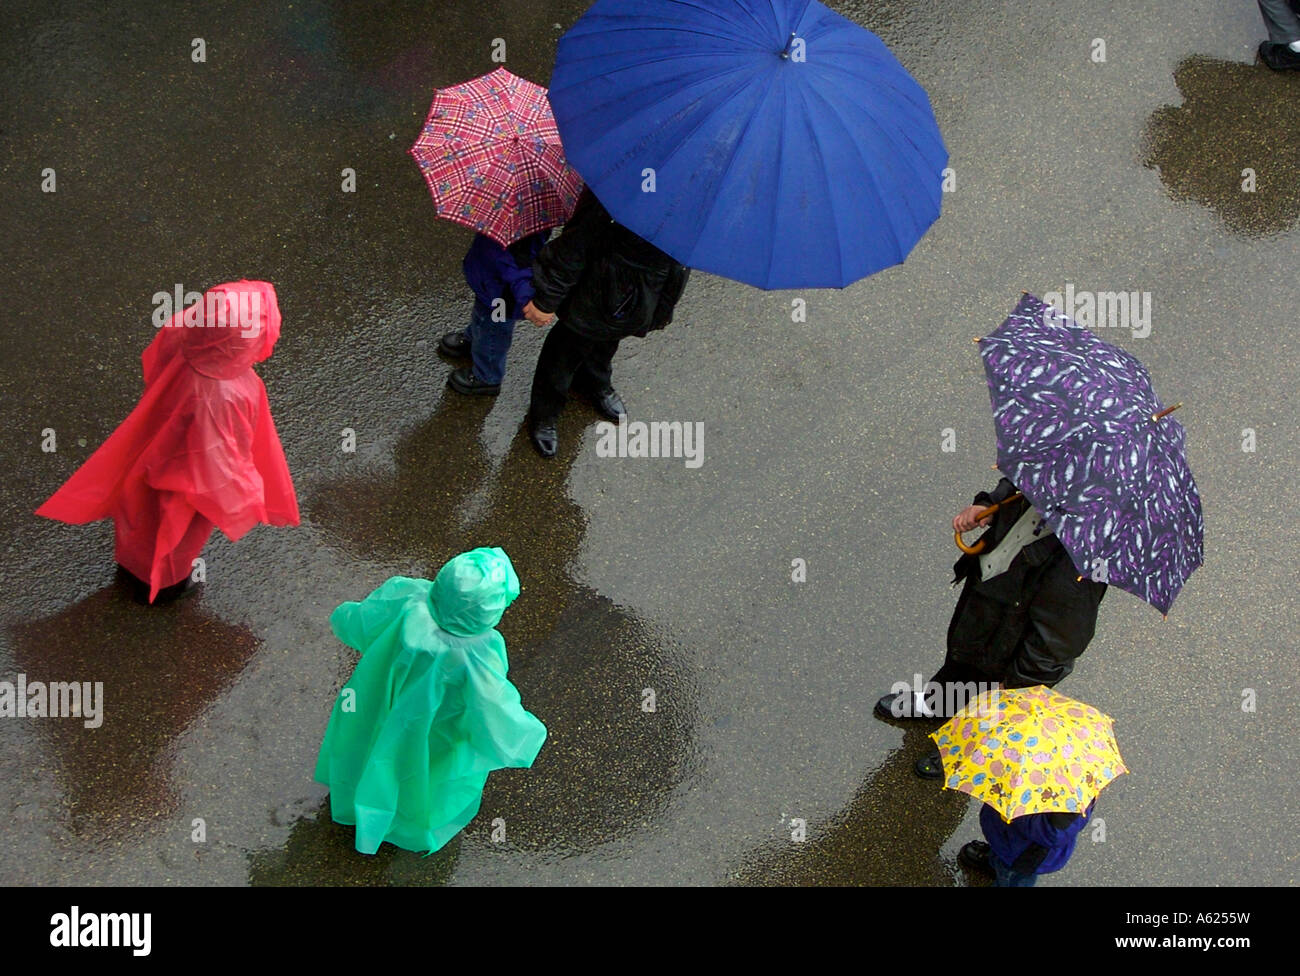 Spectators wearing rain ponchos and holding umbrellas brave the rain to watch the Passion precession in Chicago. - Stock Image